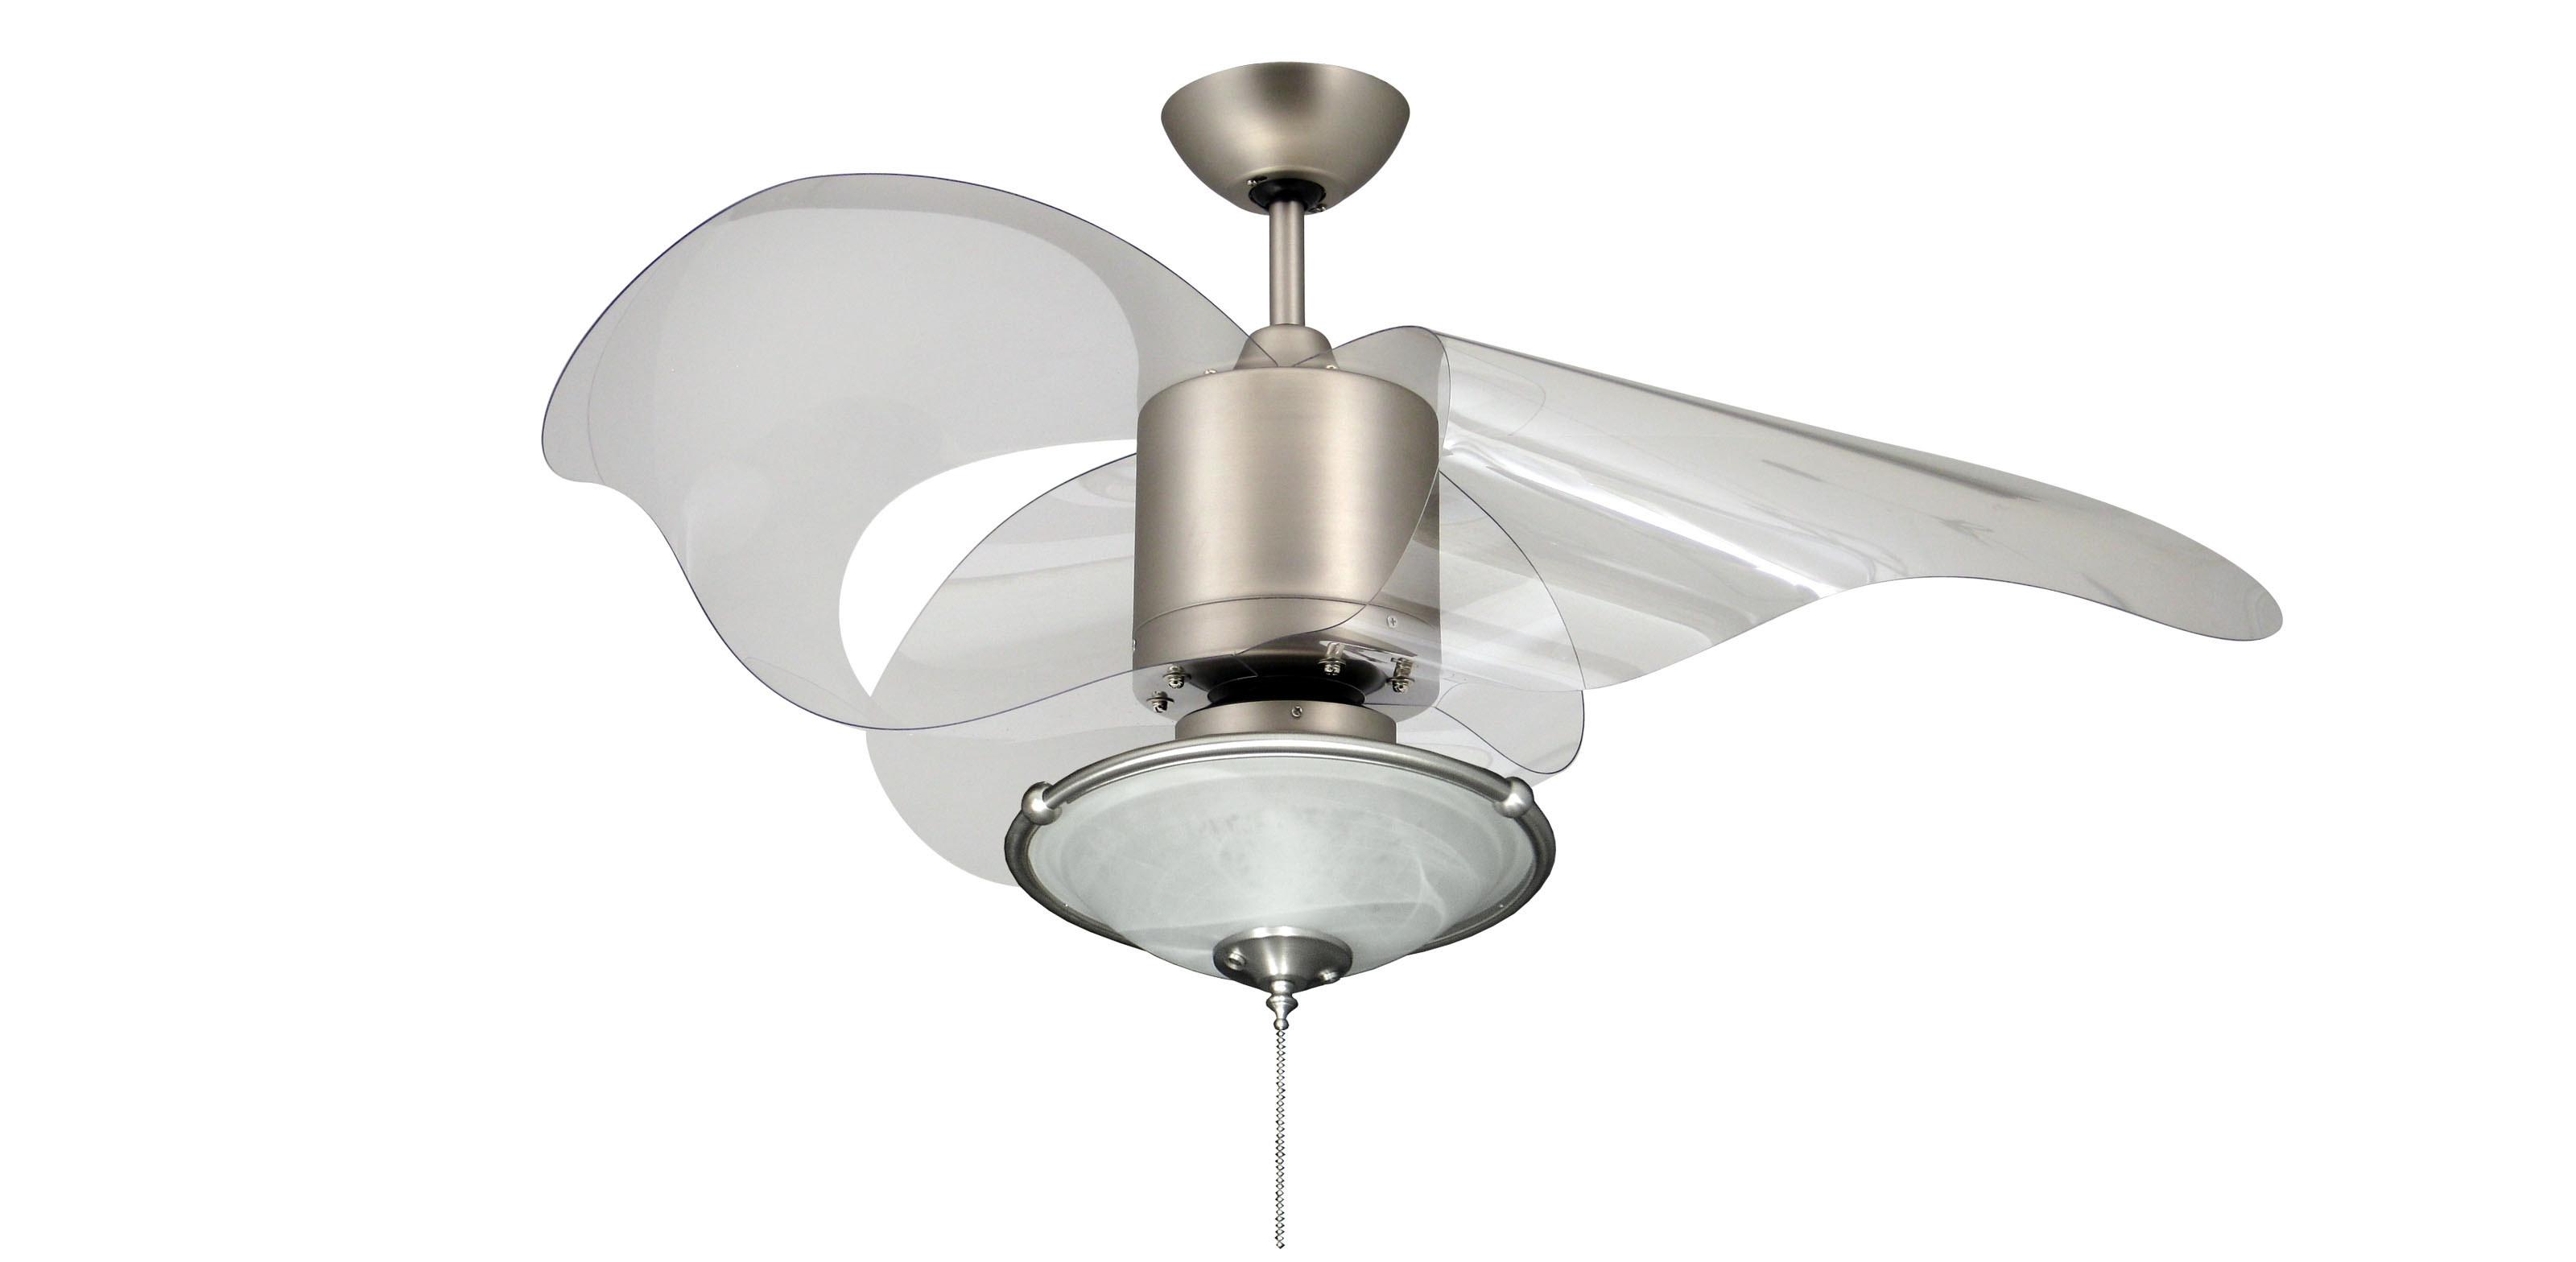 Famous 24 Inch Outdoor Ceiling Fans With Light Intended For Ceiling: Extraordinary Ceiling Fans For Small Rooms Mini Ceiling (View 20 of 20)